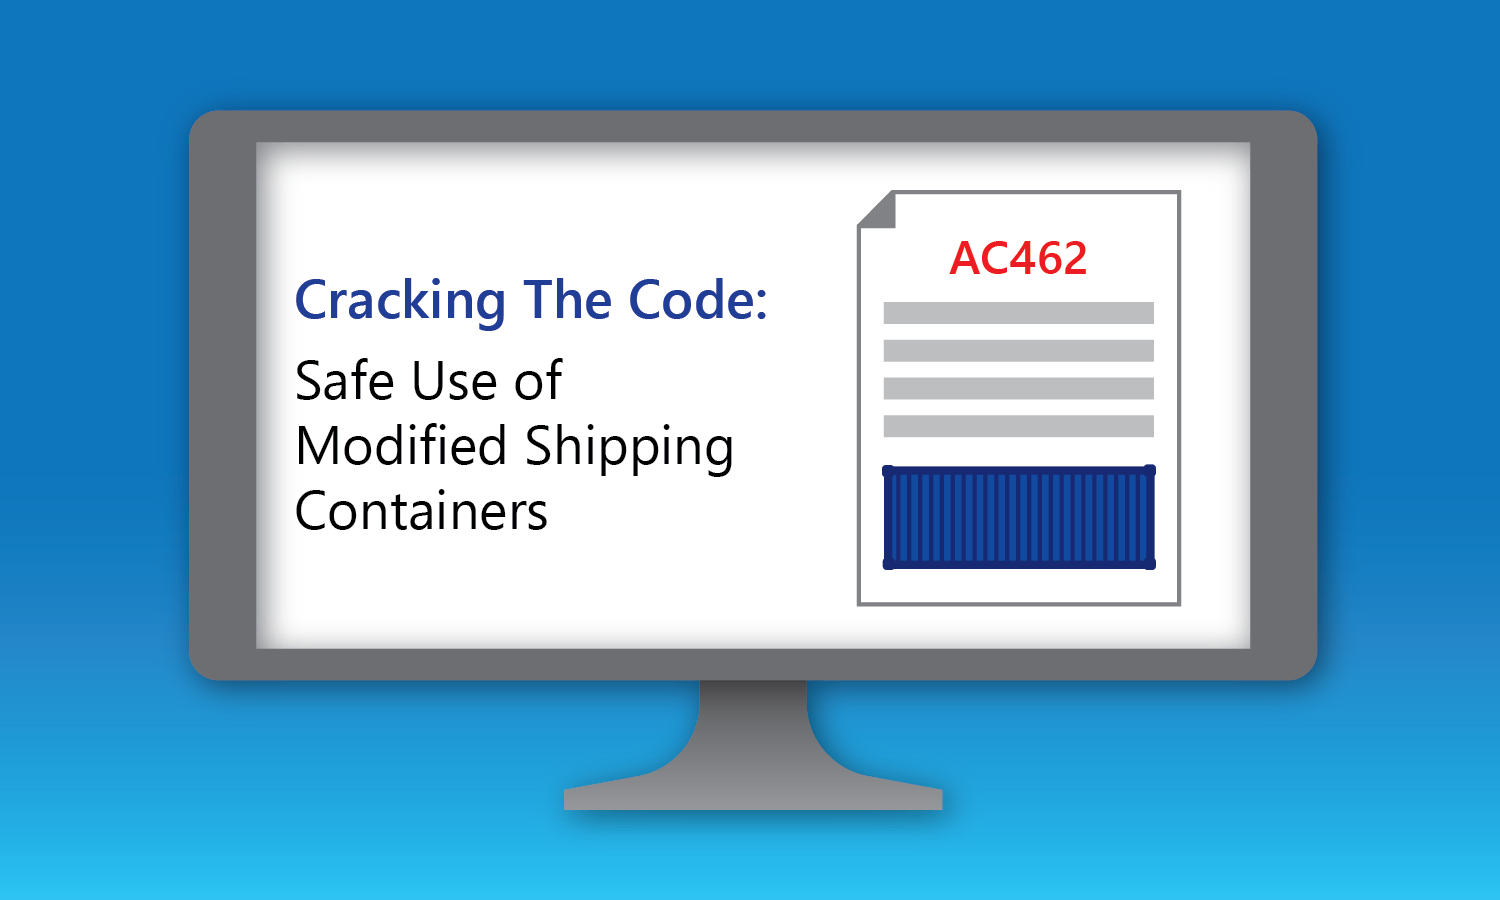 Webinar for Cracking the Code: Safe Use of Modified Shipping Containers